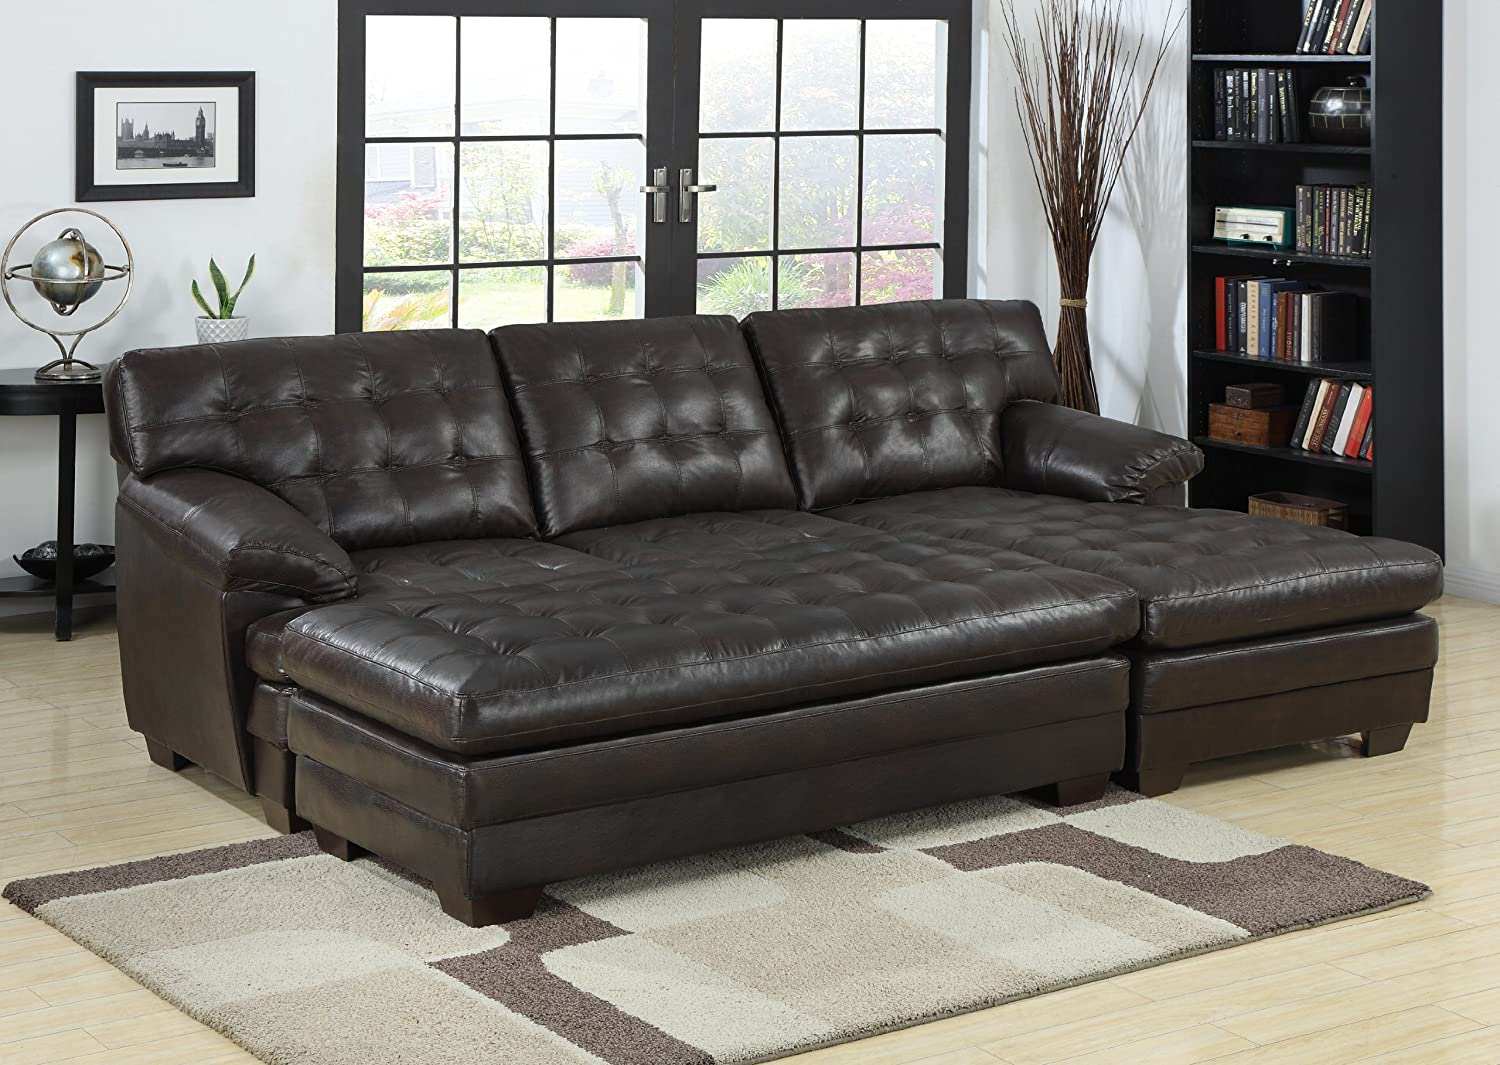 Amazoncom Homelegance 9739 ChannelTufted 2Piece Sectional Sofa